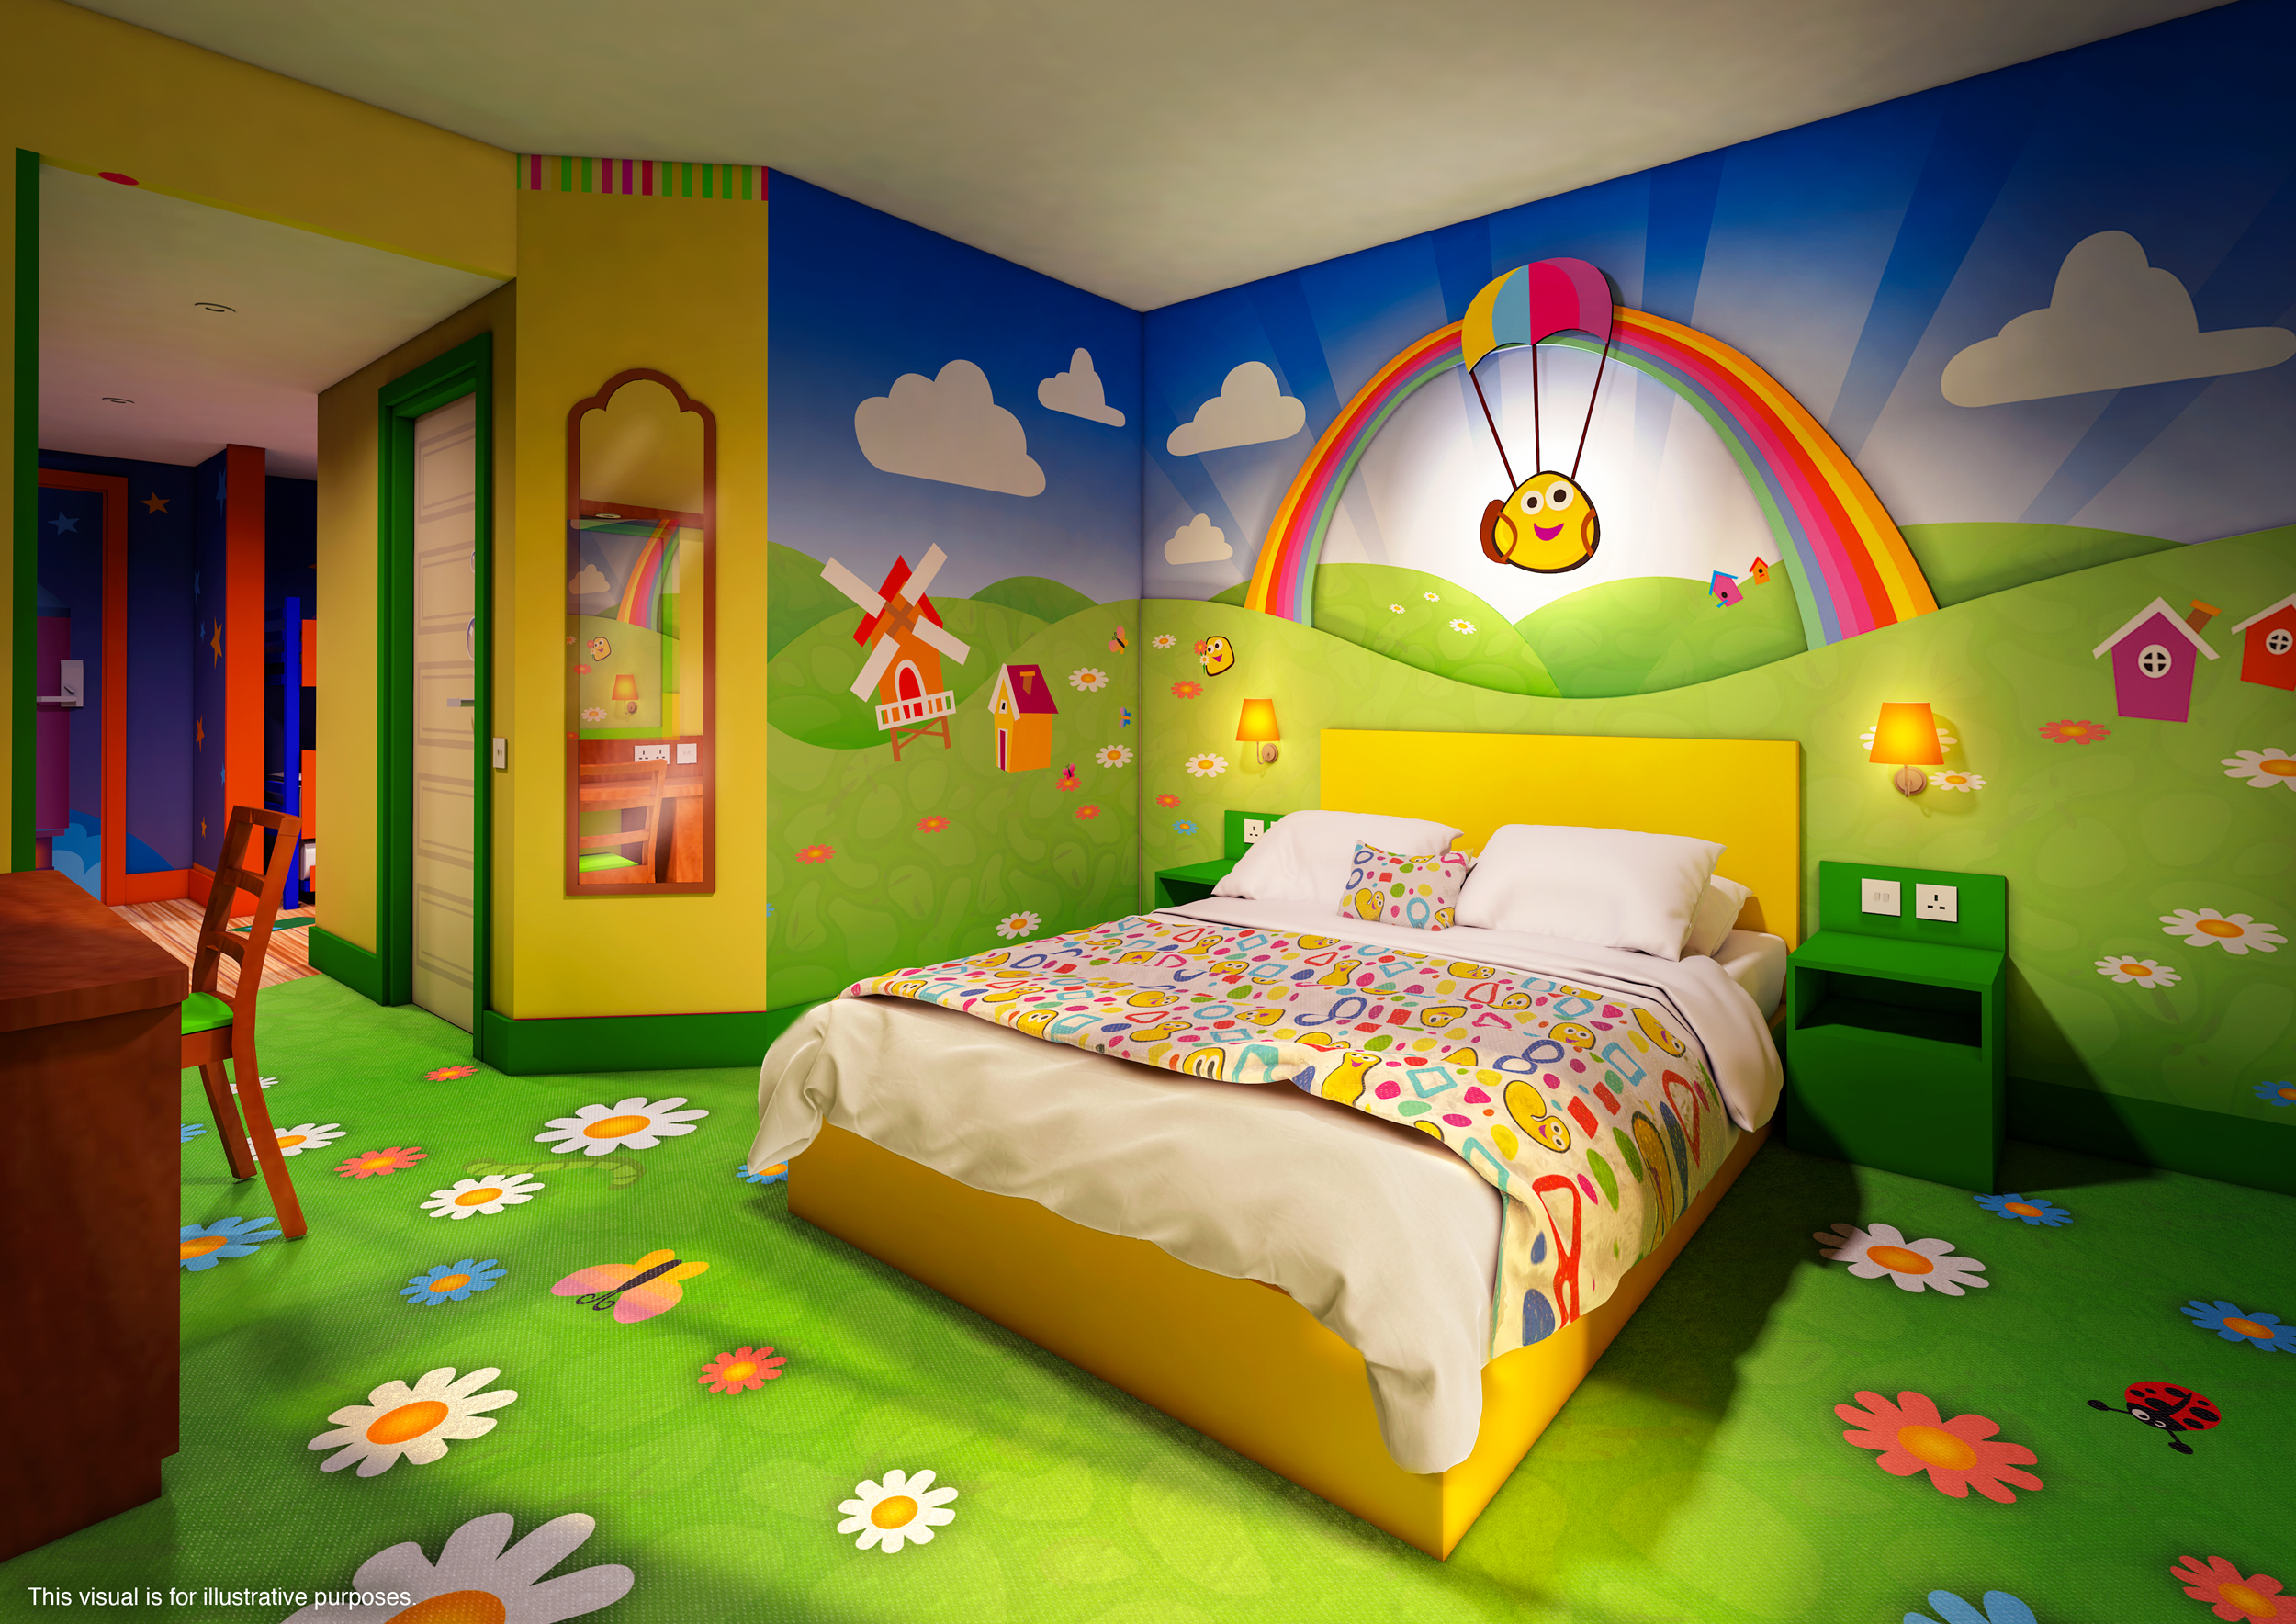 Bugbies room